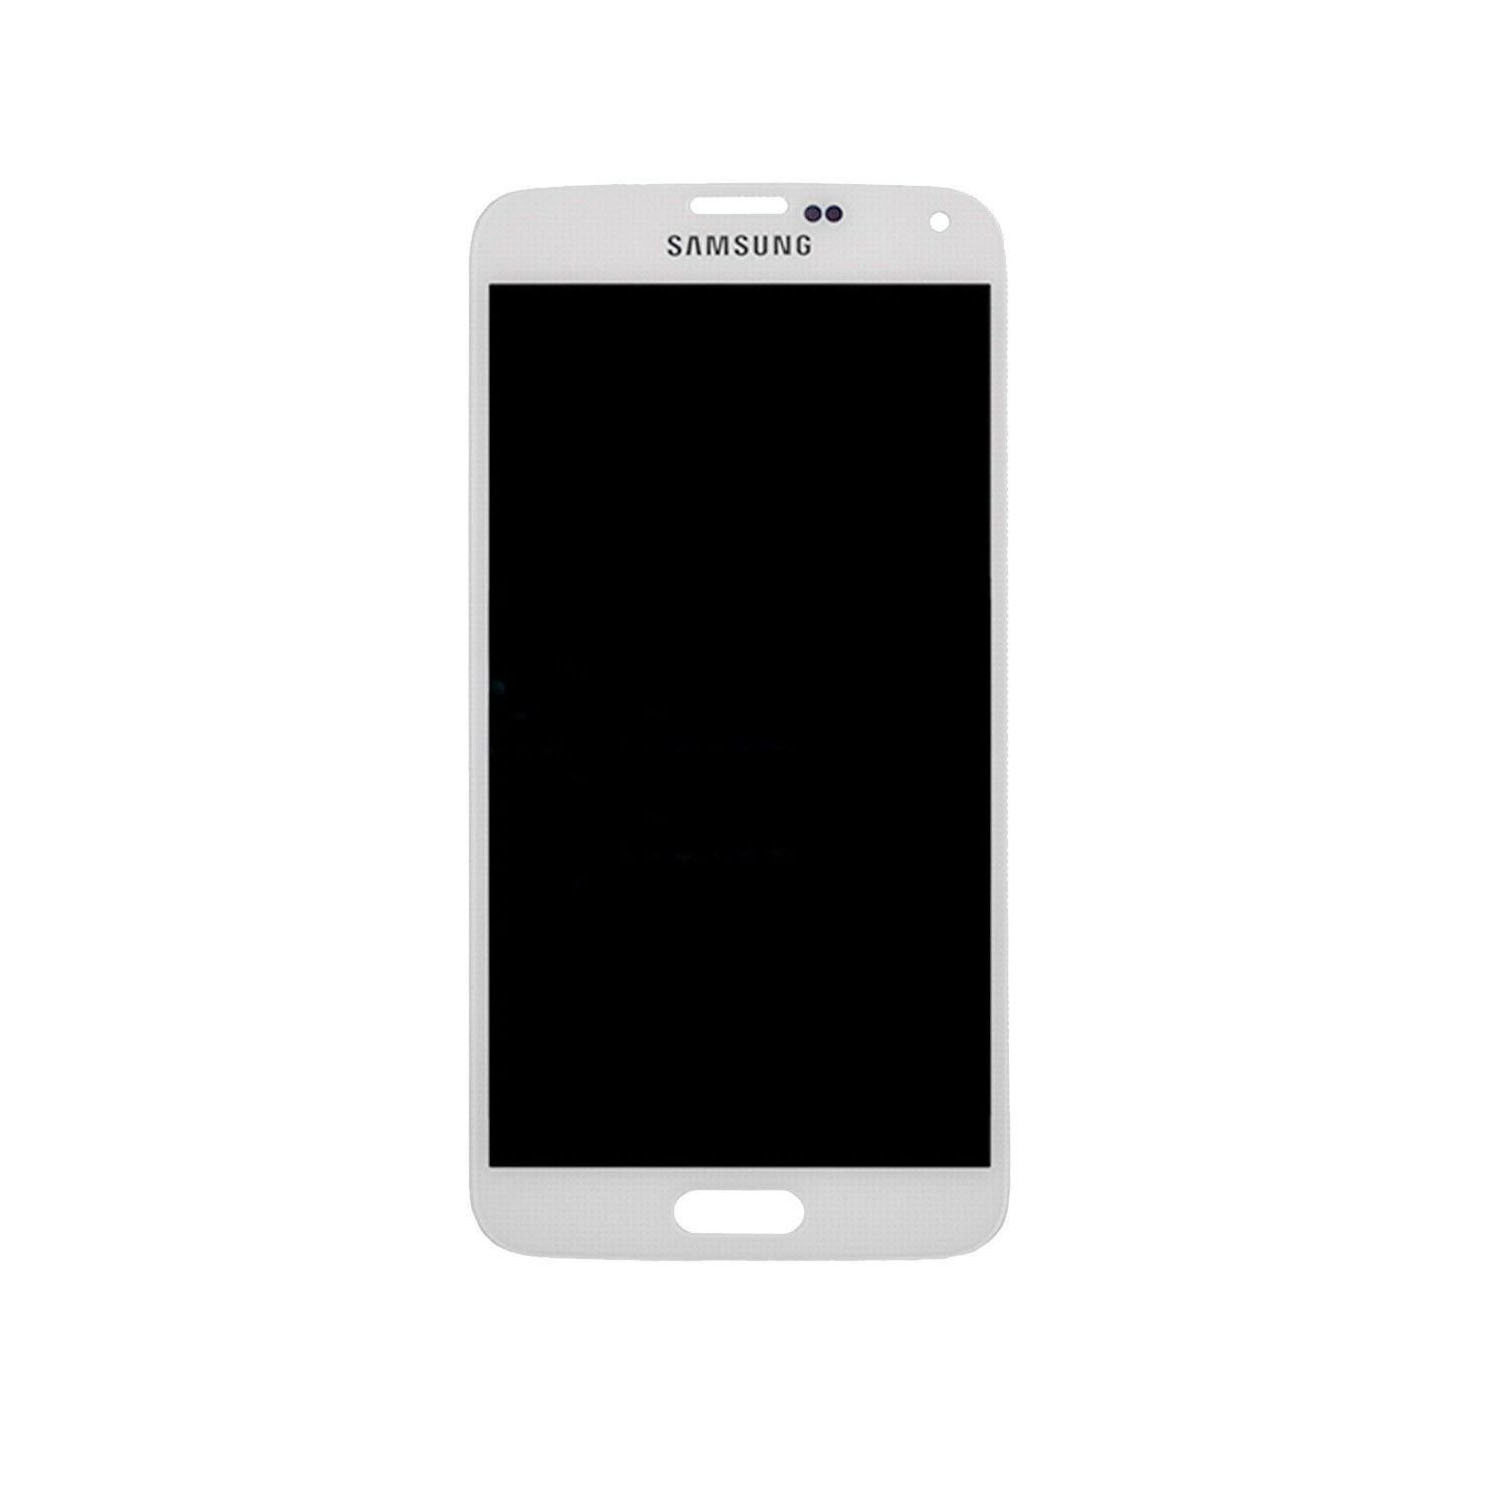 Samsung Galaxy S5 Screen Replacement - White